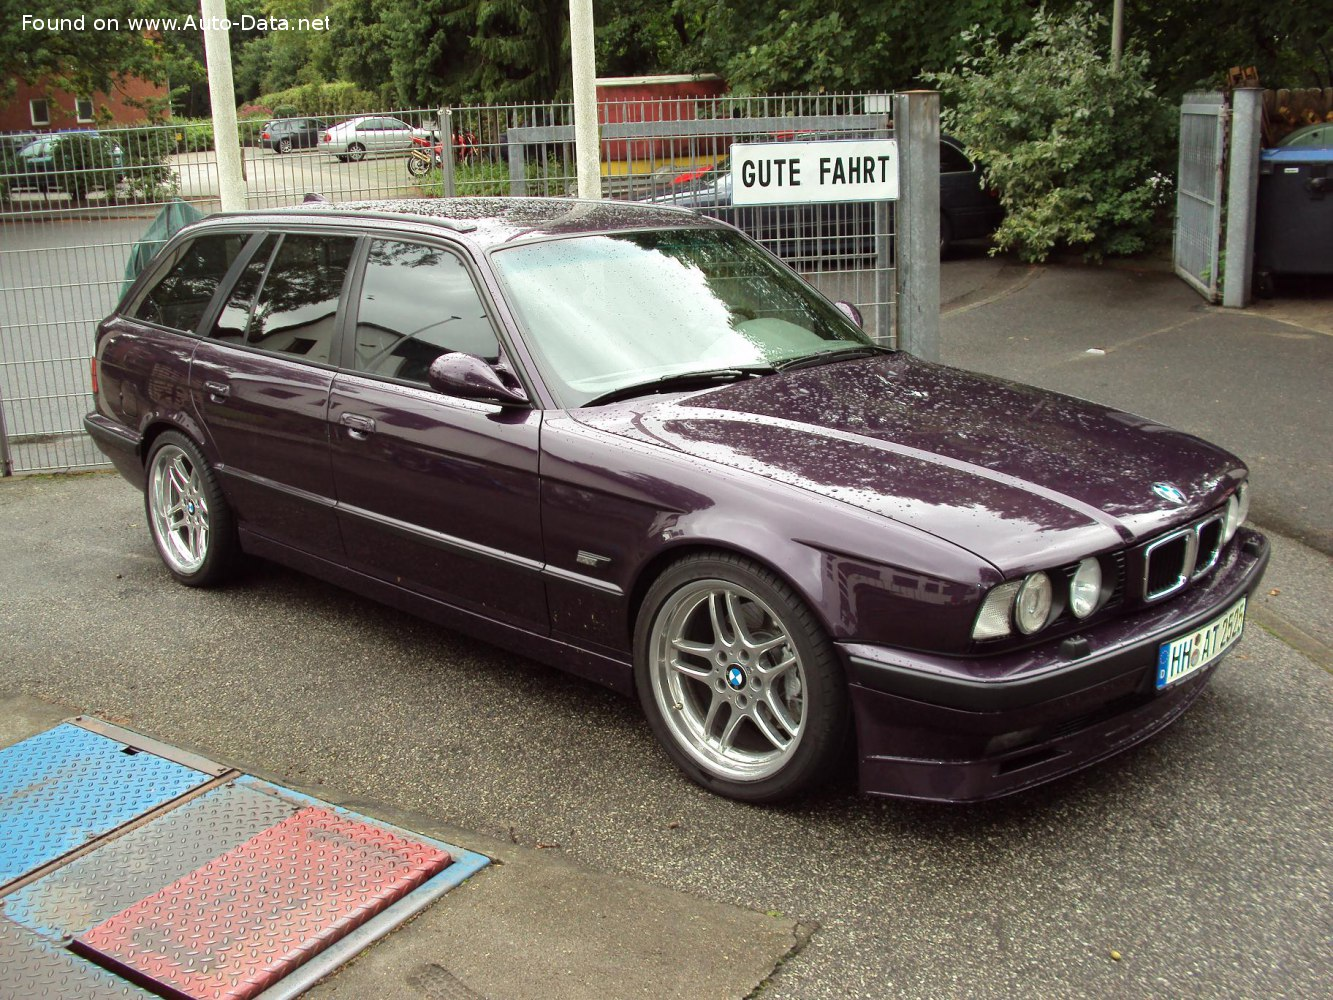 1991 Bmw 5 Series Touring E34 525i 192 Hp Technical Specs Data Fuel Consumption Dimensions